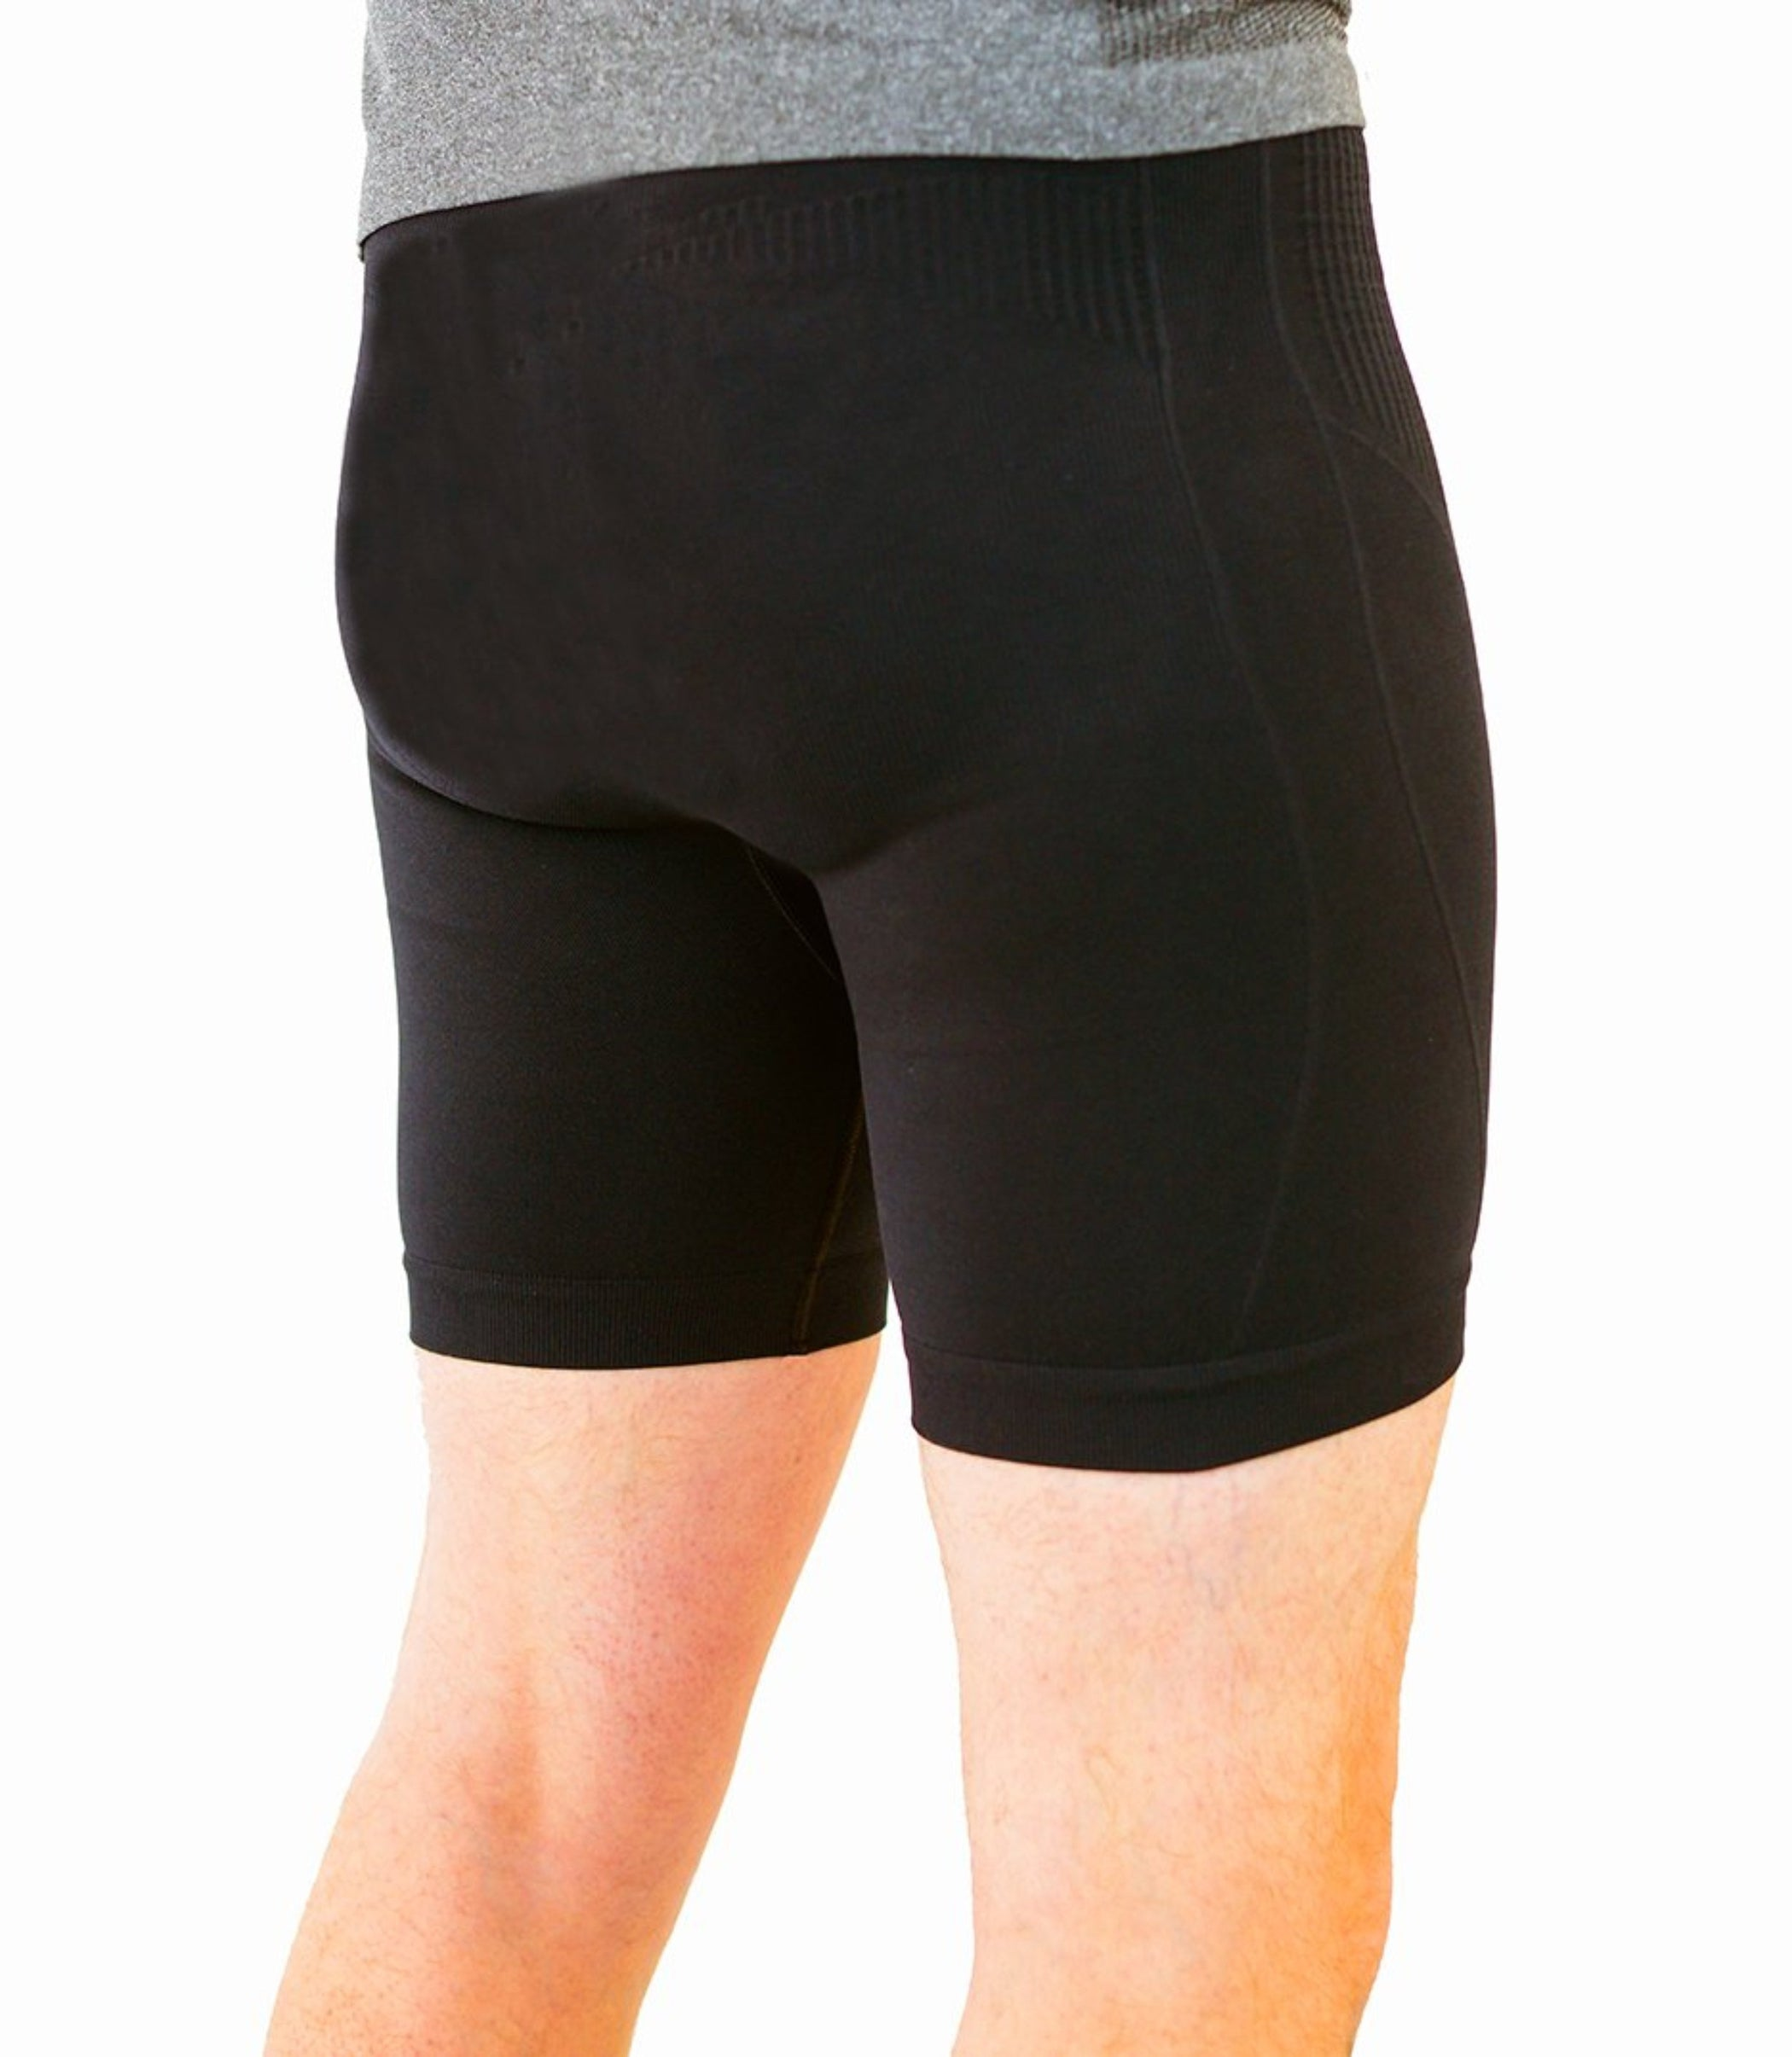 Black compression shorts with patented fully seamless front with 6 inch inseam. Back view.